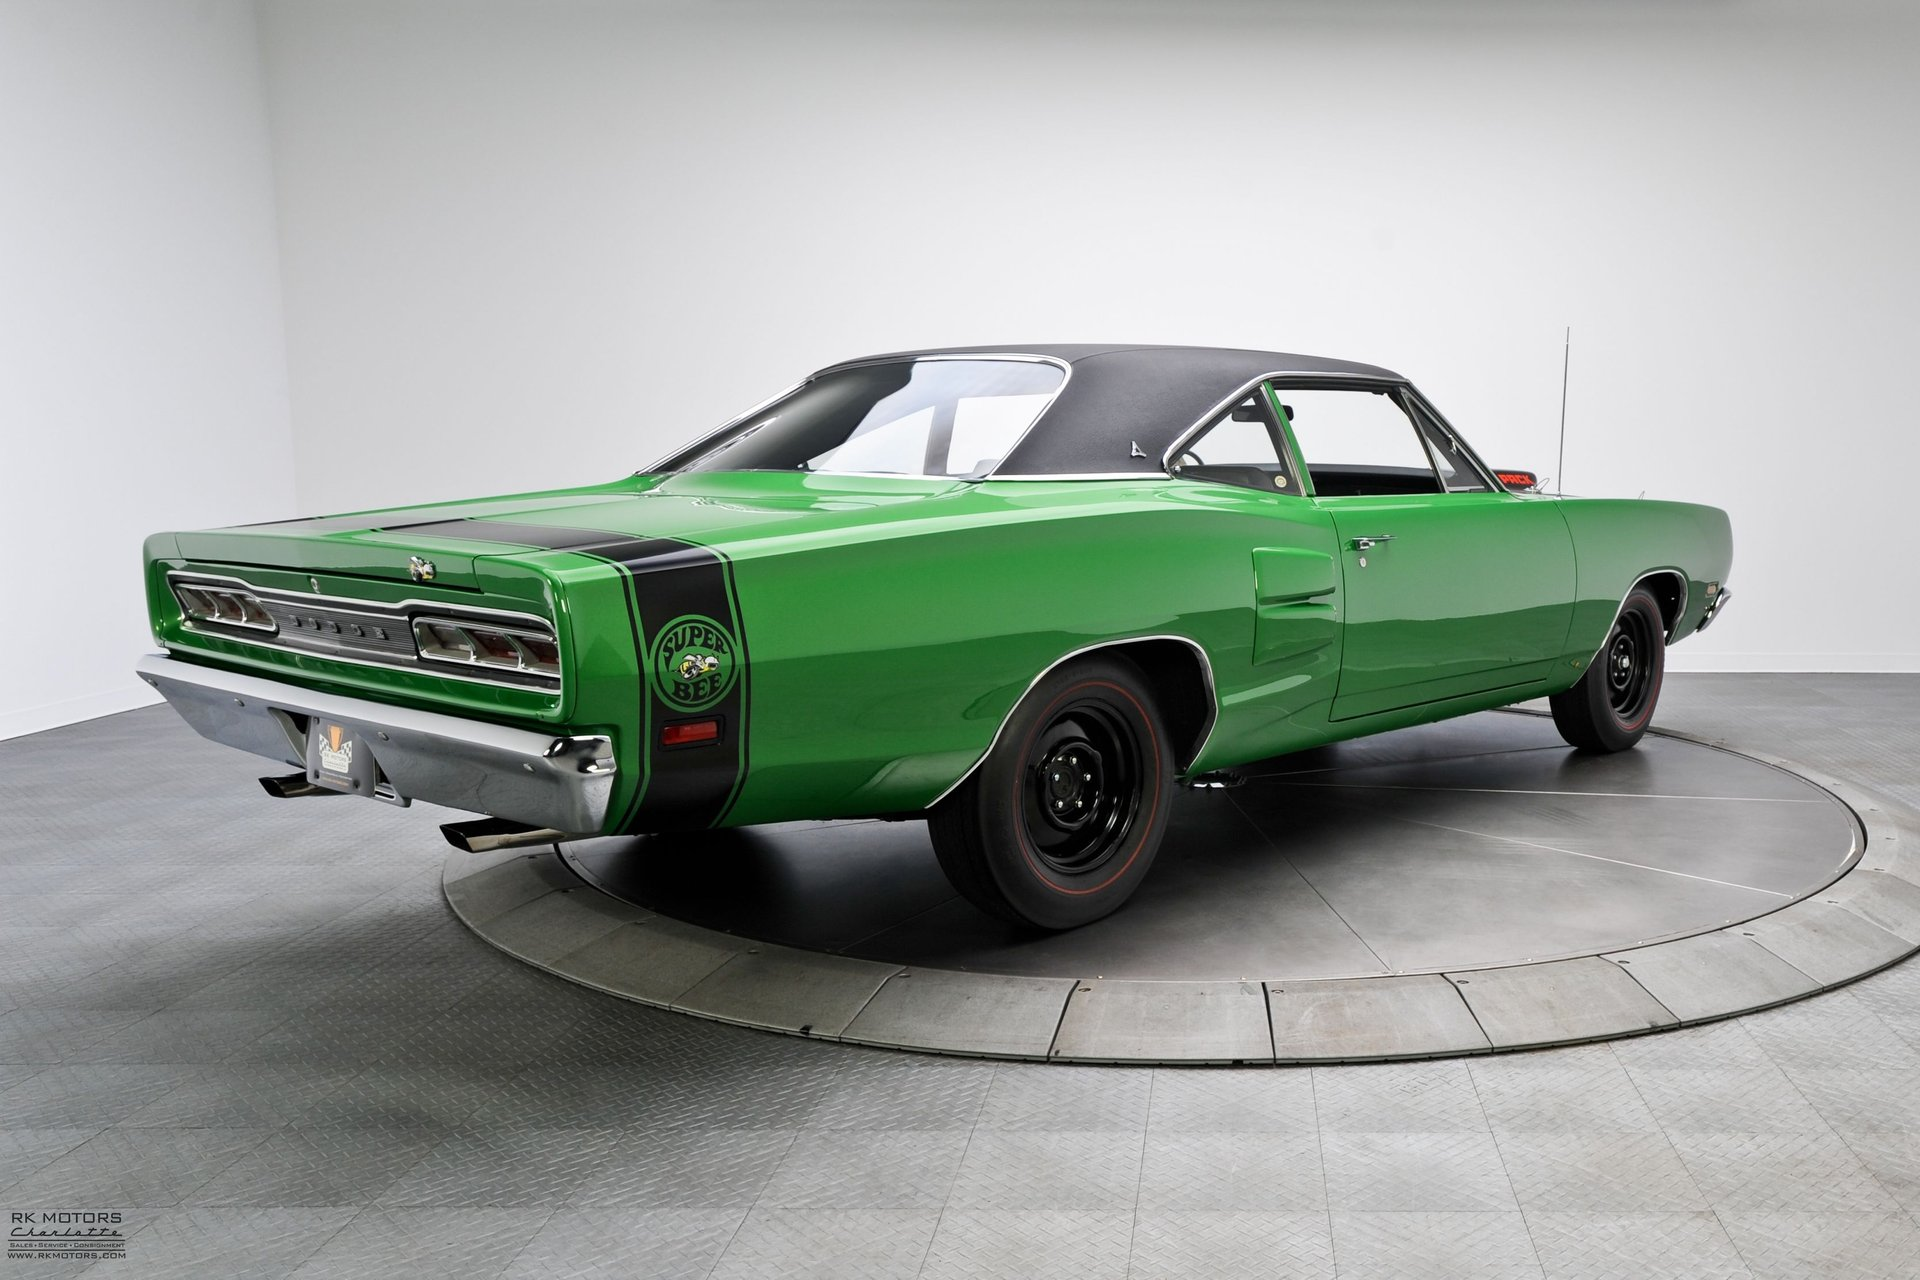 134555 1969 1/2 Dodge Coronet RK Motors Classic Cars for Sale